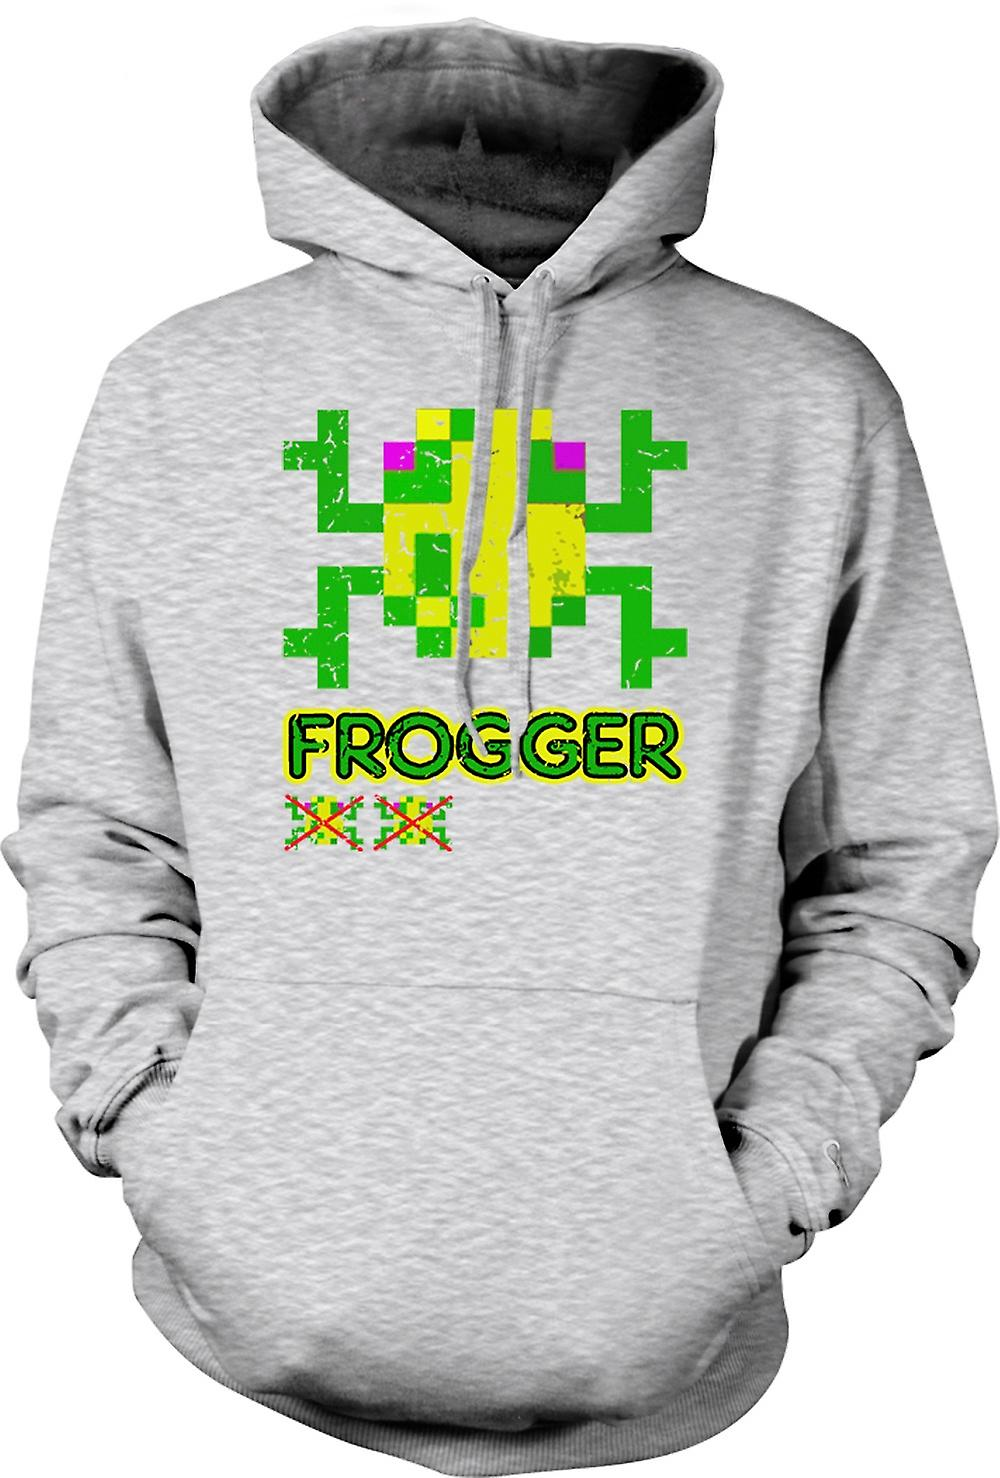 Mens Hoodie - Frogger - Classic Arcade Game 0s Gamer